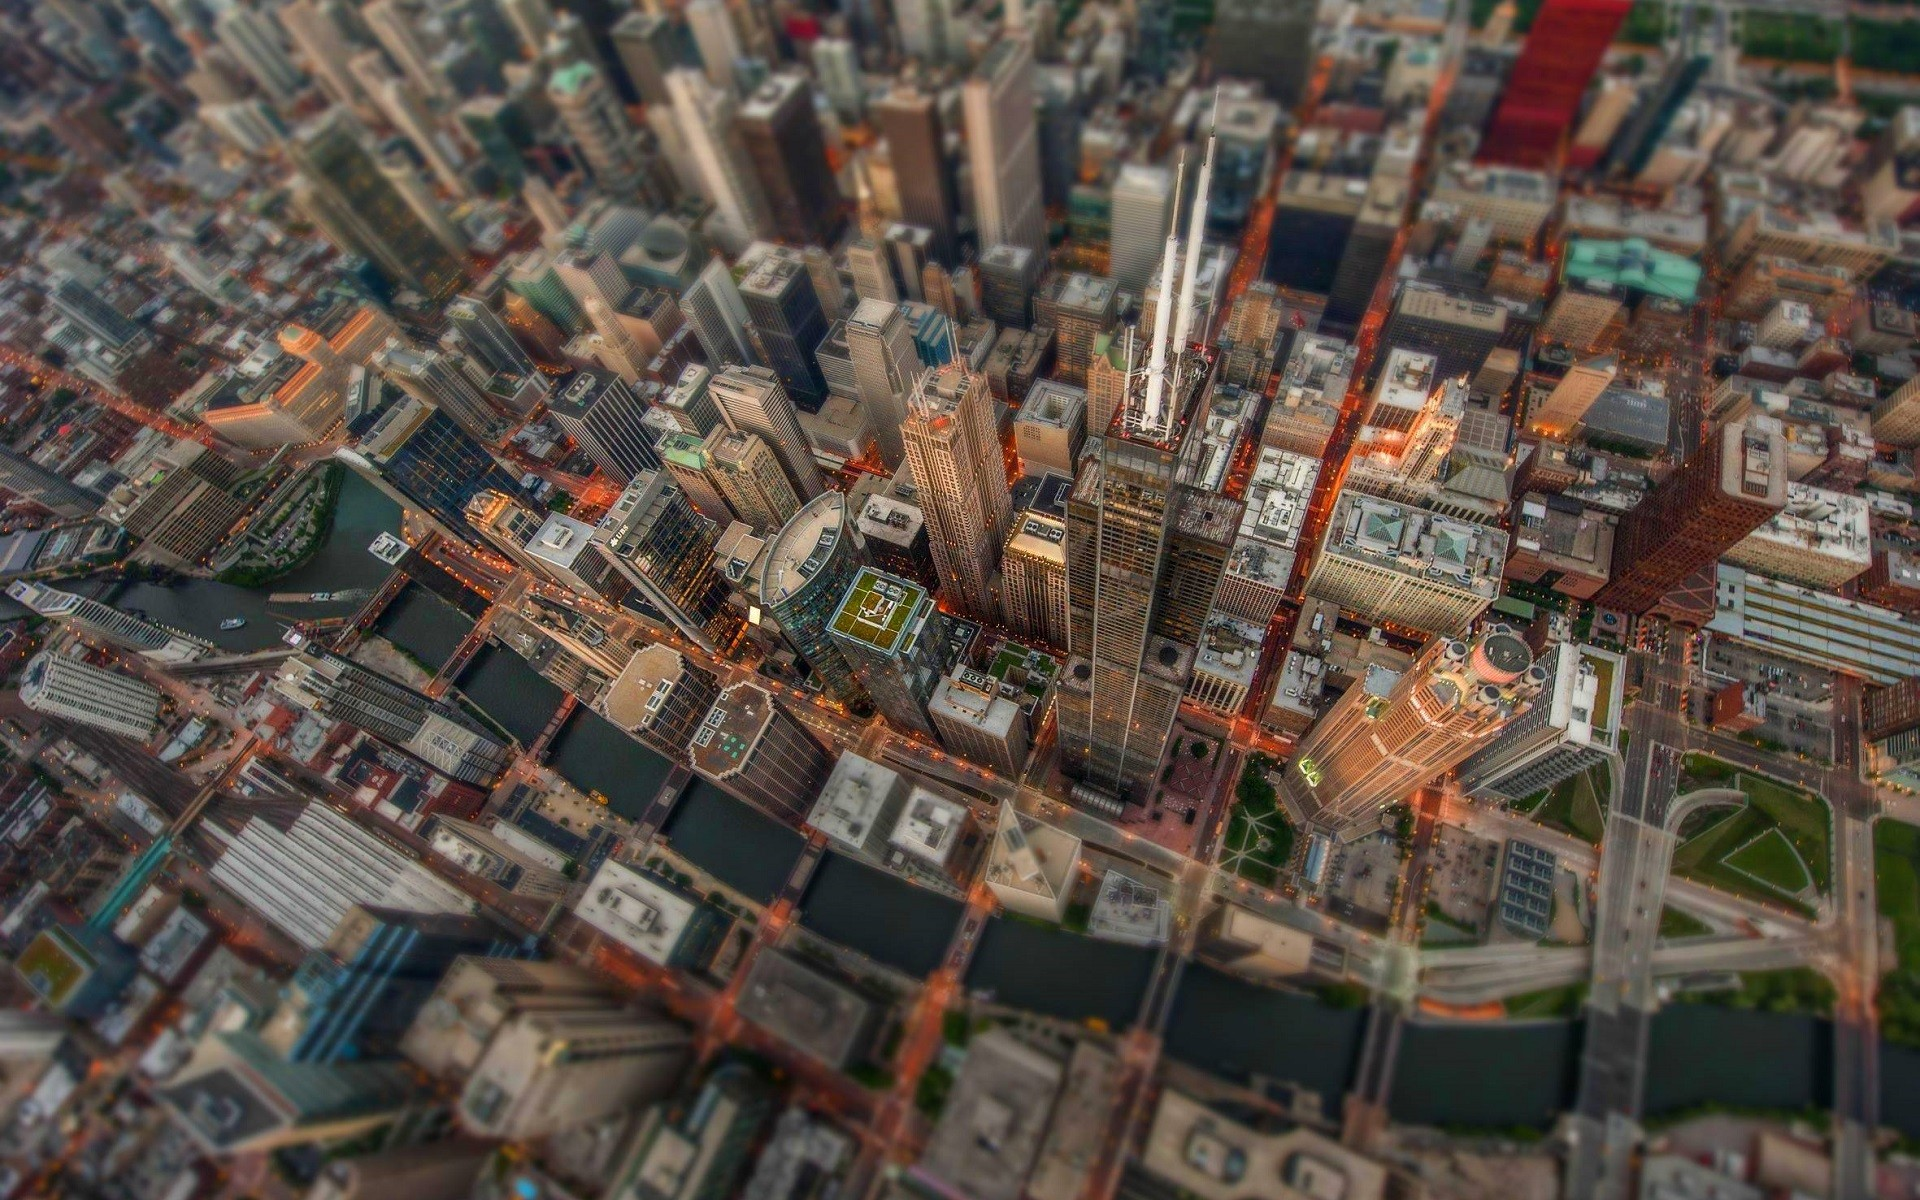 General 1920x1200 Chicago city cityscape building river skyscraper bird's eye view tilt shift USA